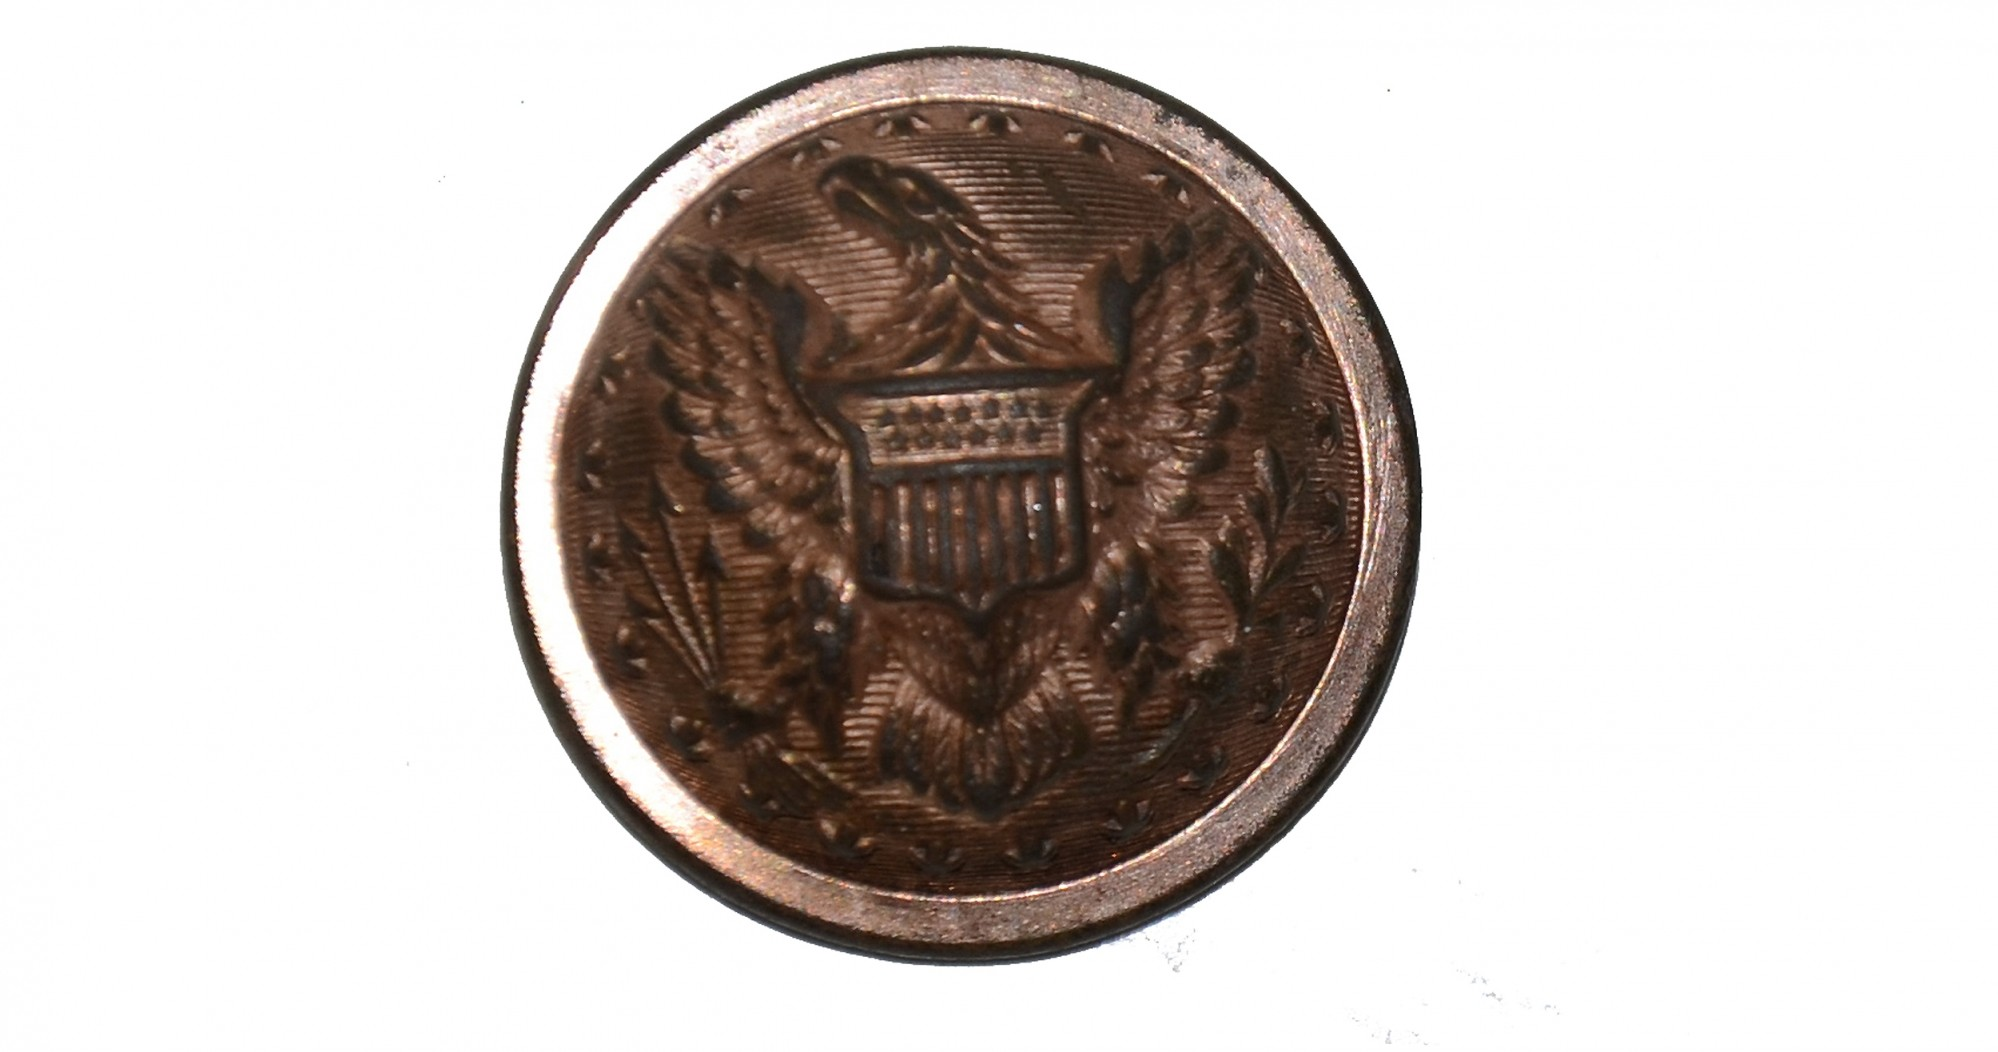 UNION STAFF OFFICER'S COAT BUTTON FROM THE MAC MASON COLLECTION